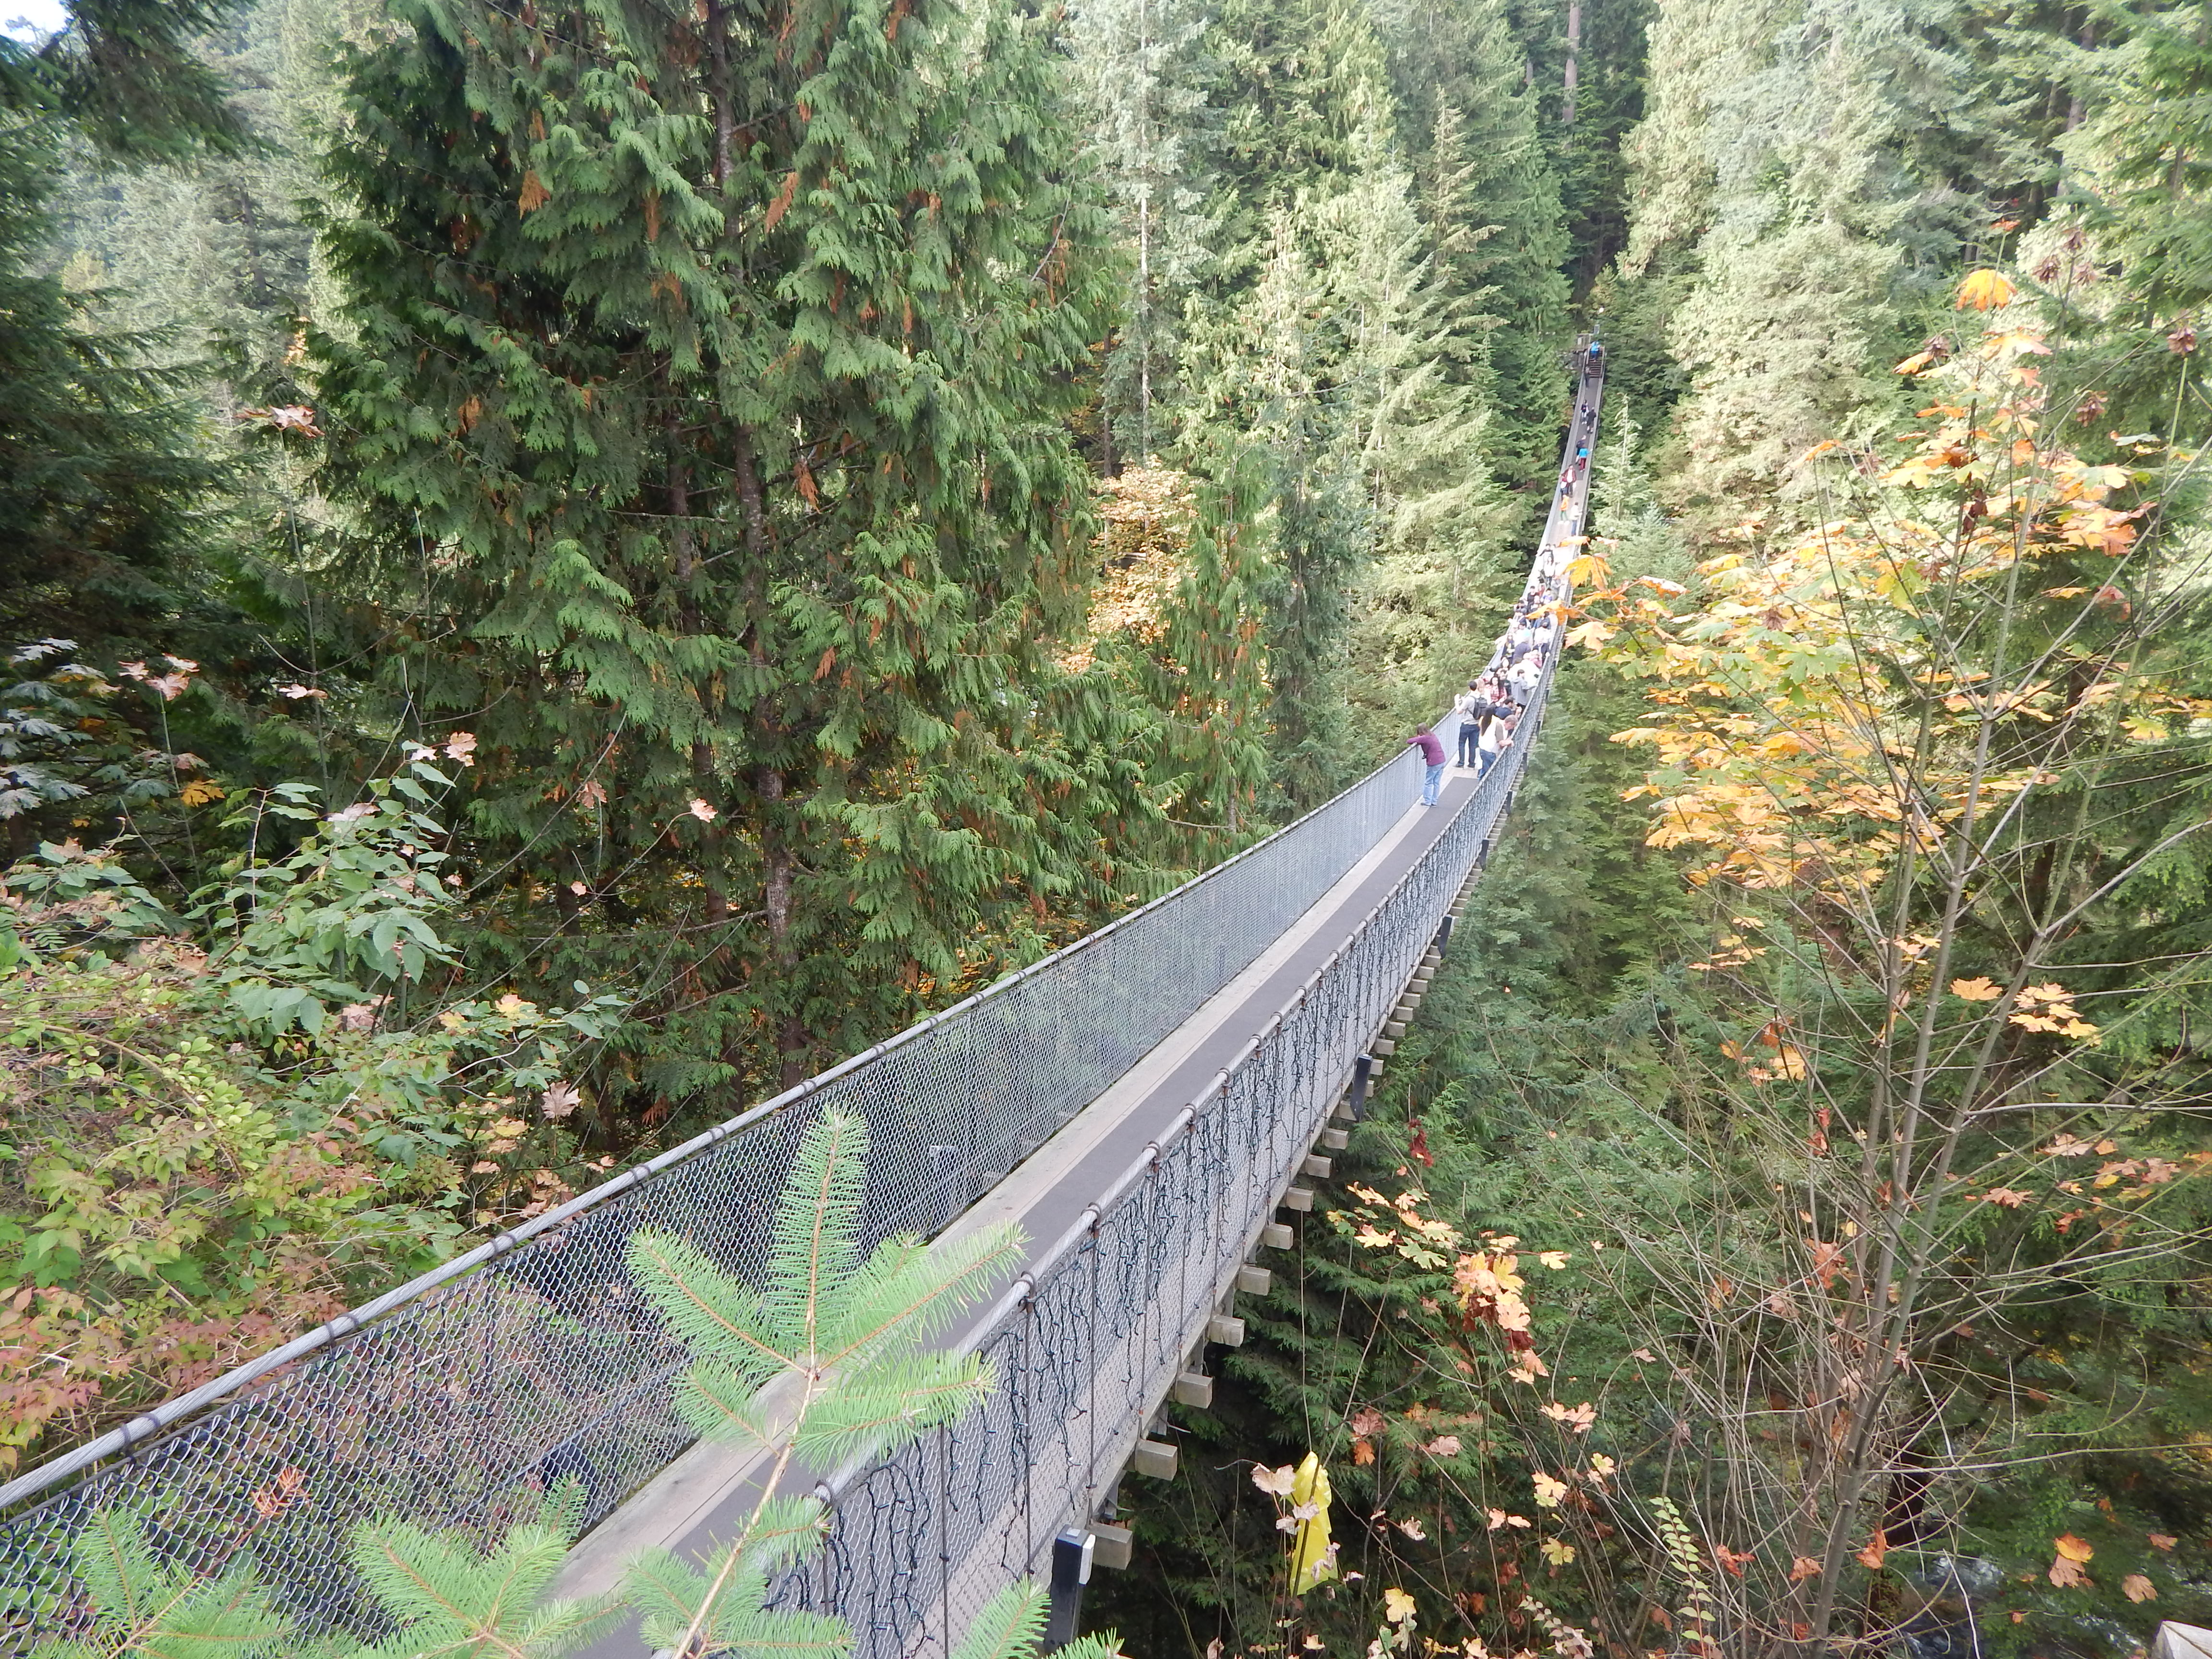 The suspension bridge is 230 feet above the Capilano River.